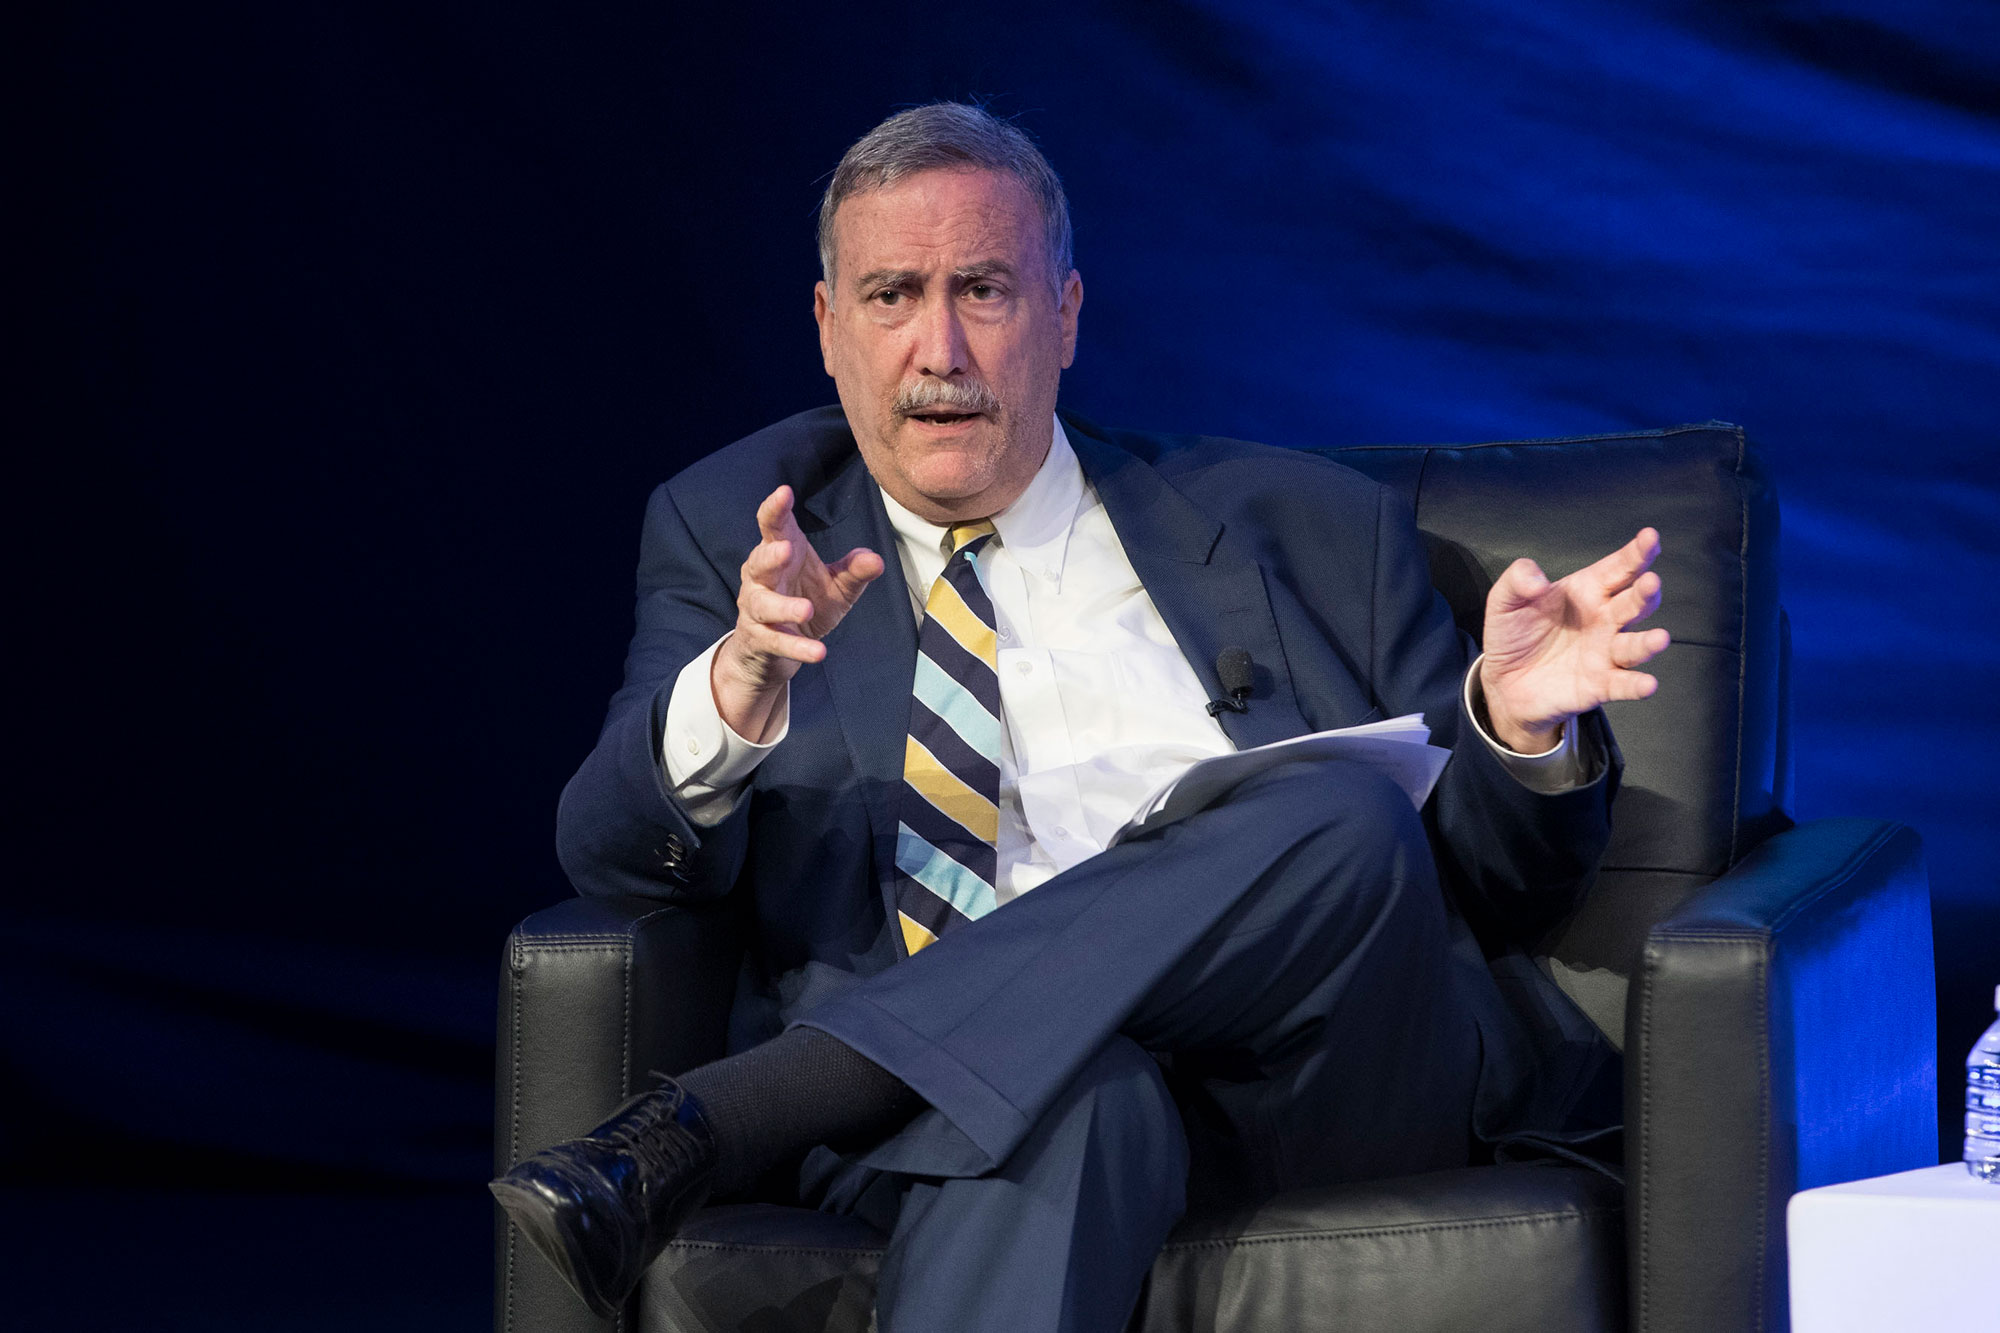 Larry Sabato's Crystal Ball website was declared among the most accurate in the nation by independent statistician Nicholas Cohen last year. (Photo by Dan Addison, University Communications)